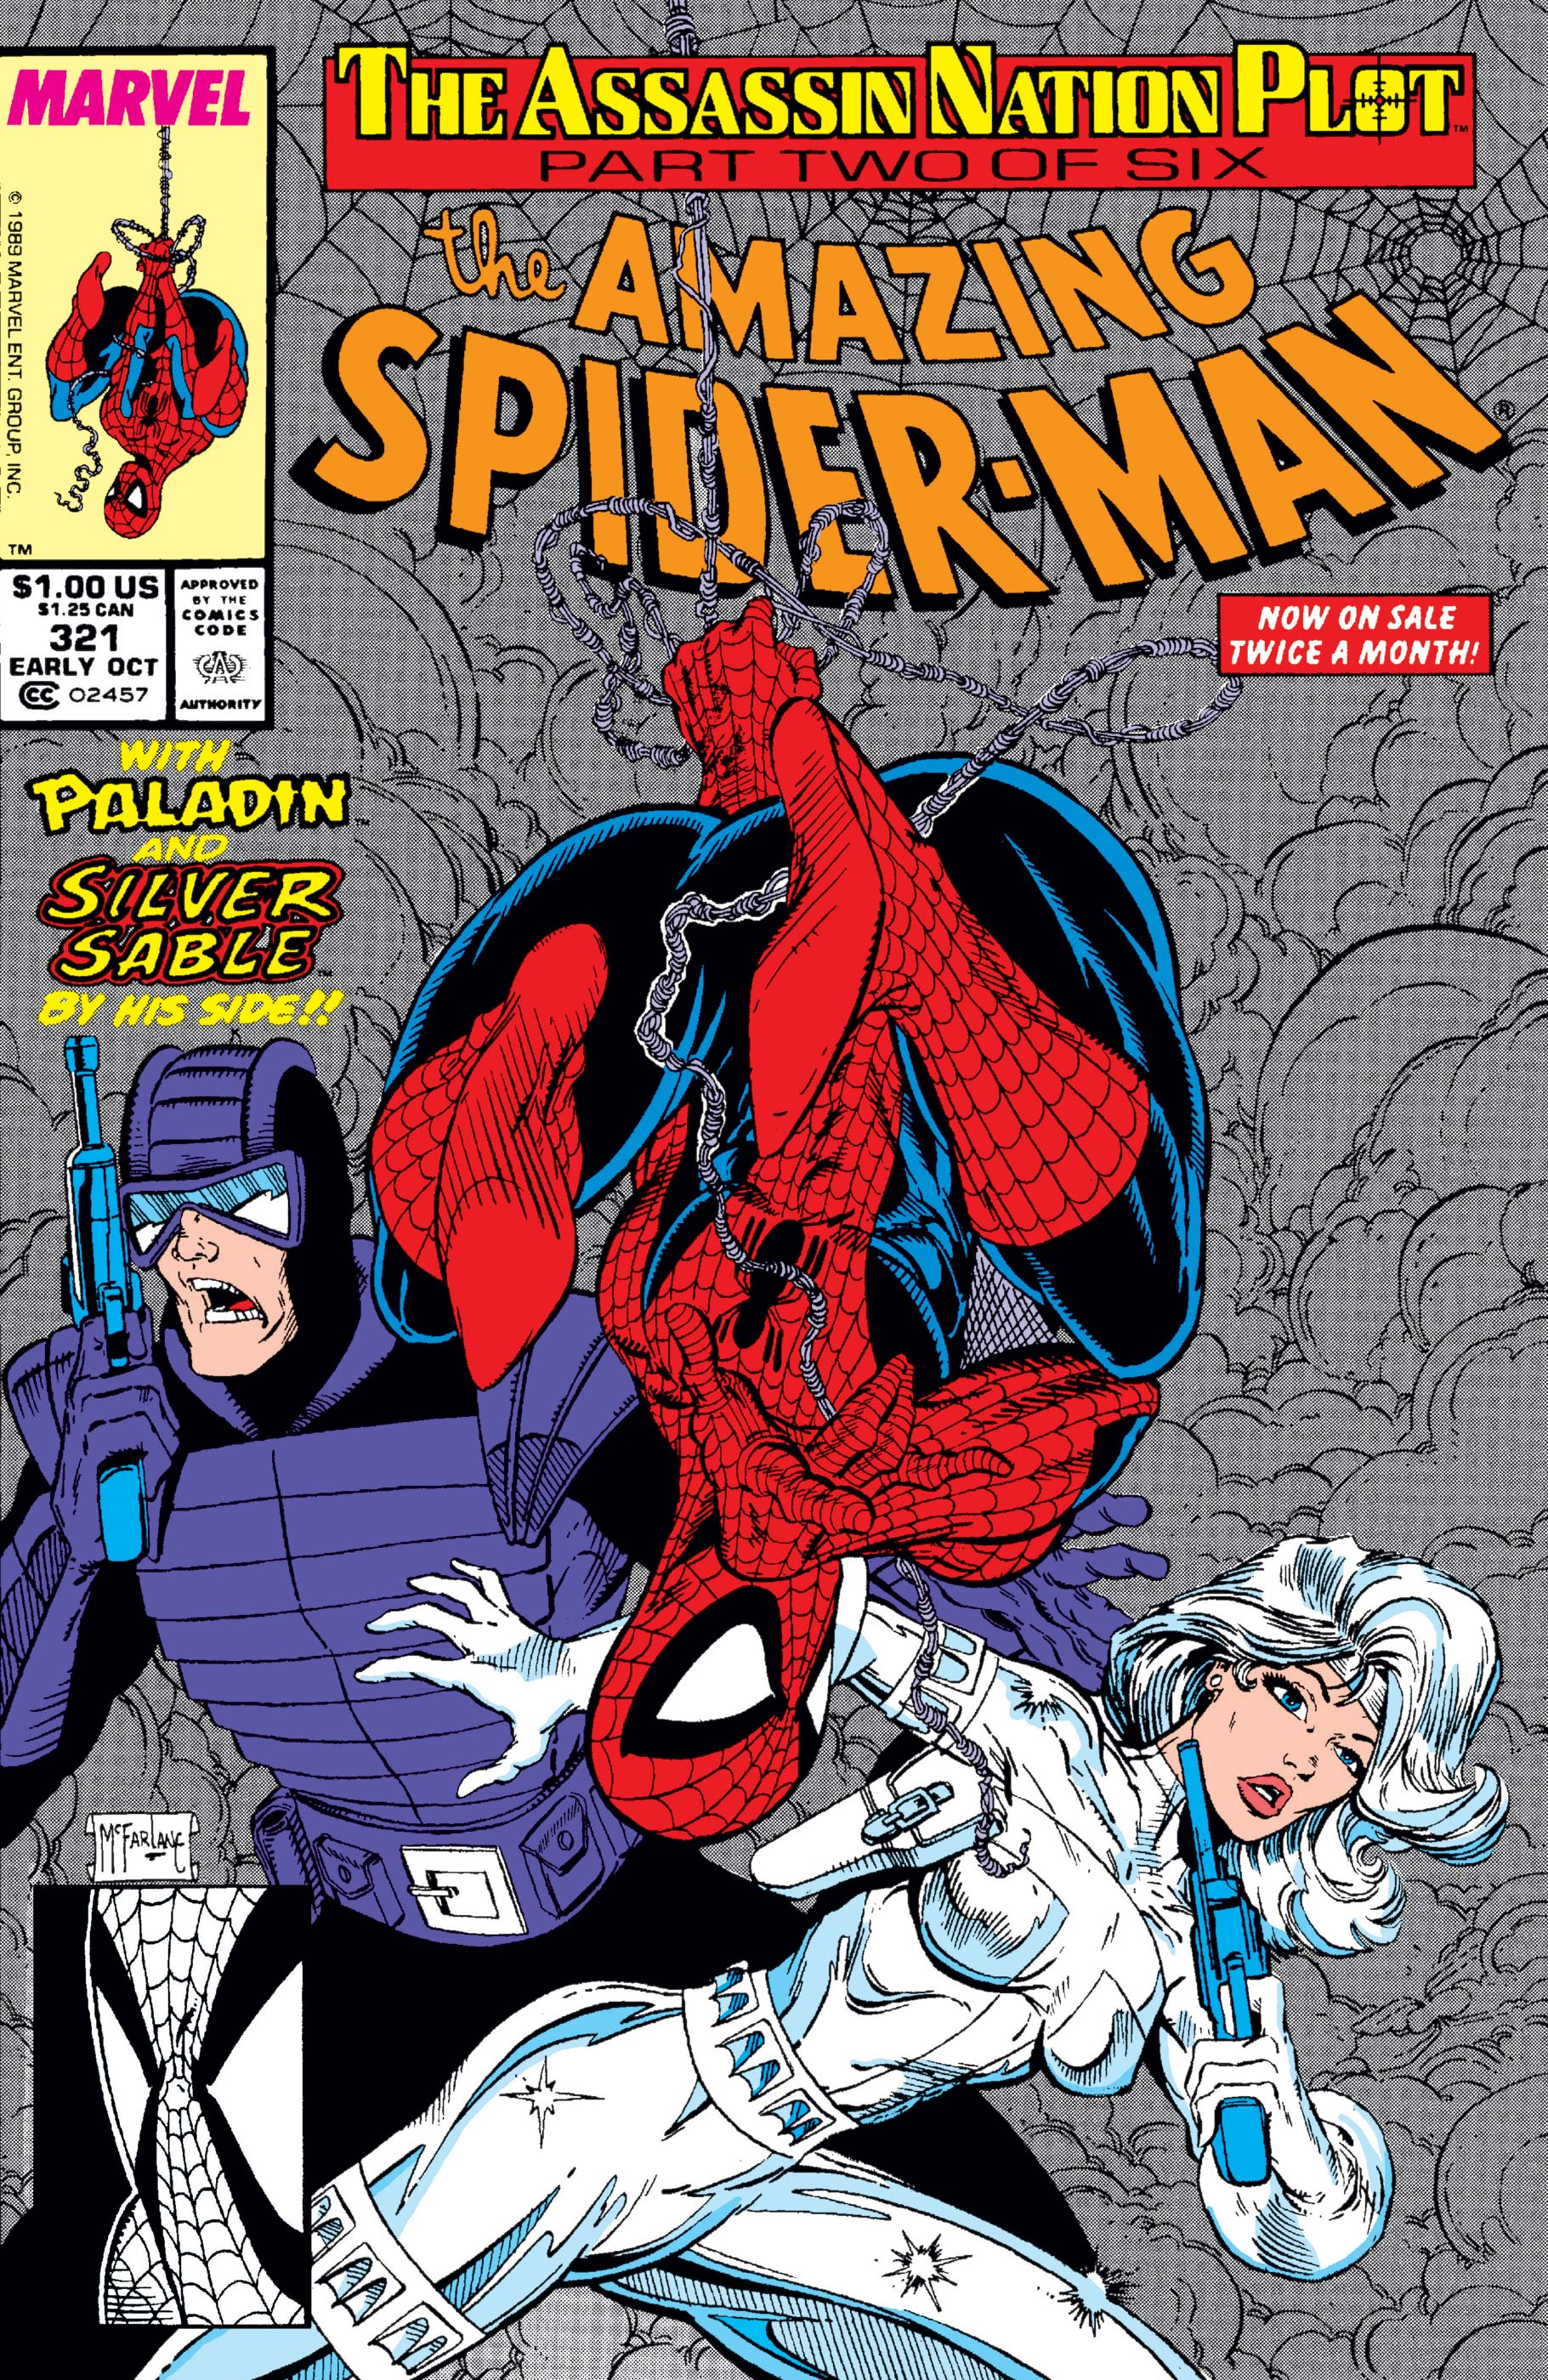 The Amazing Spider-Man (1963) #321